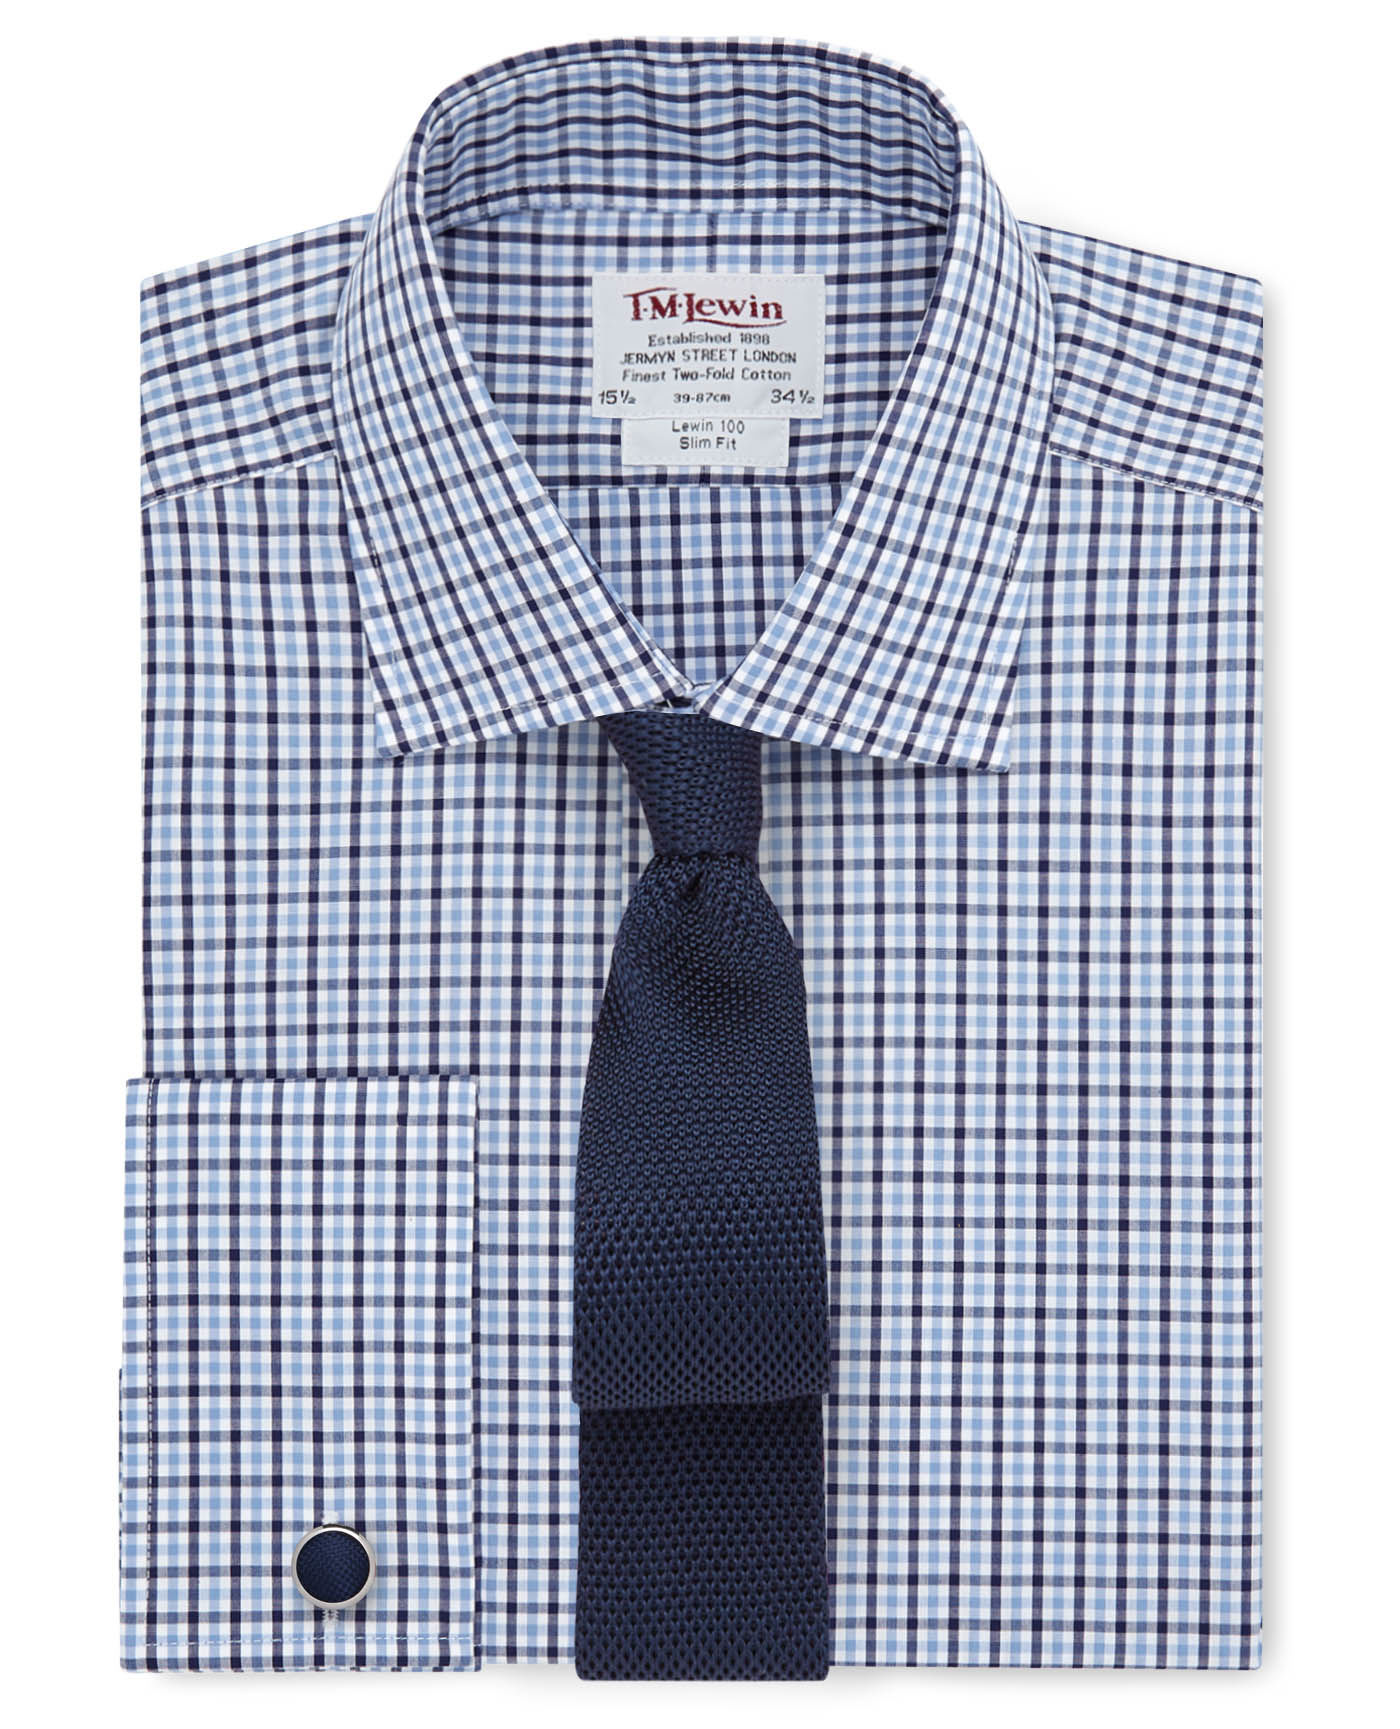 Slim fit blue navy gingham check shirt thebeardmag for Navy blue gingham shirt